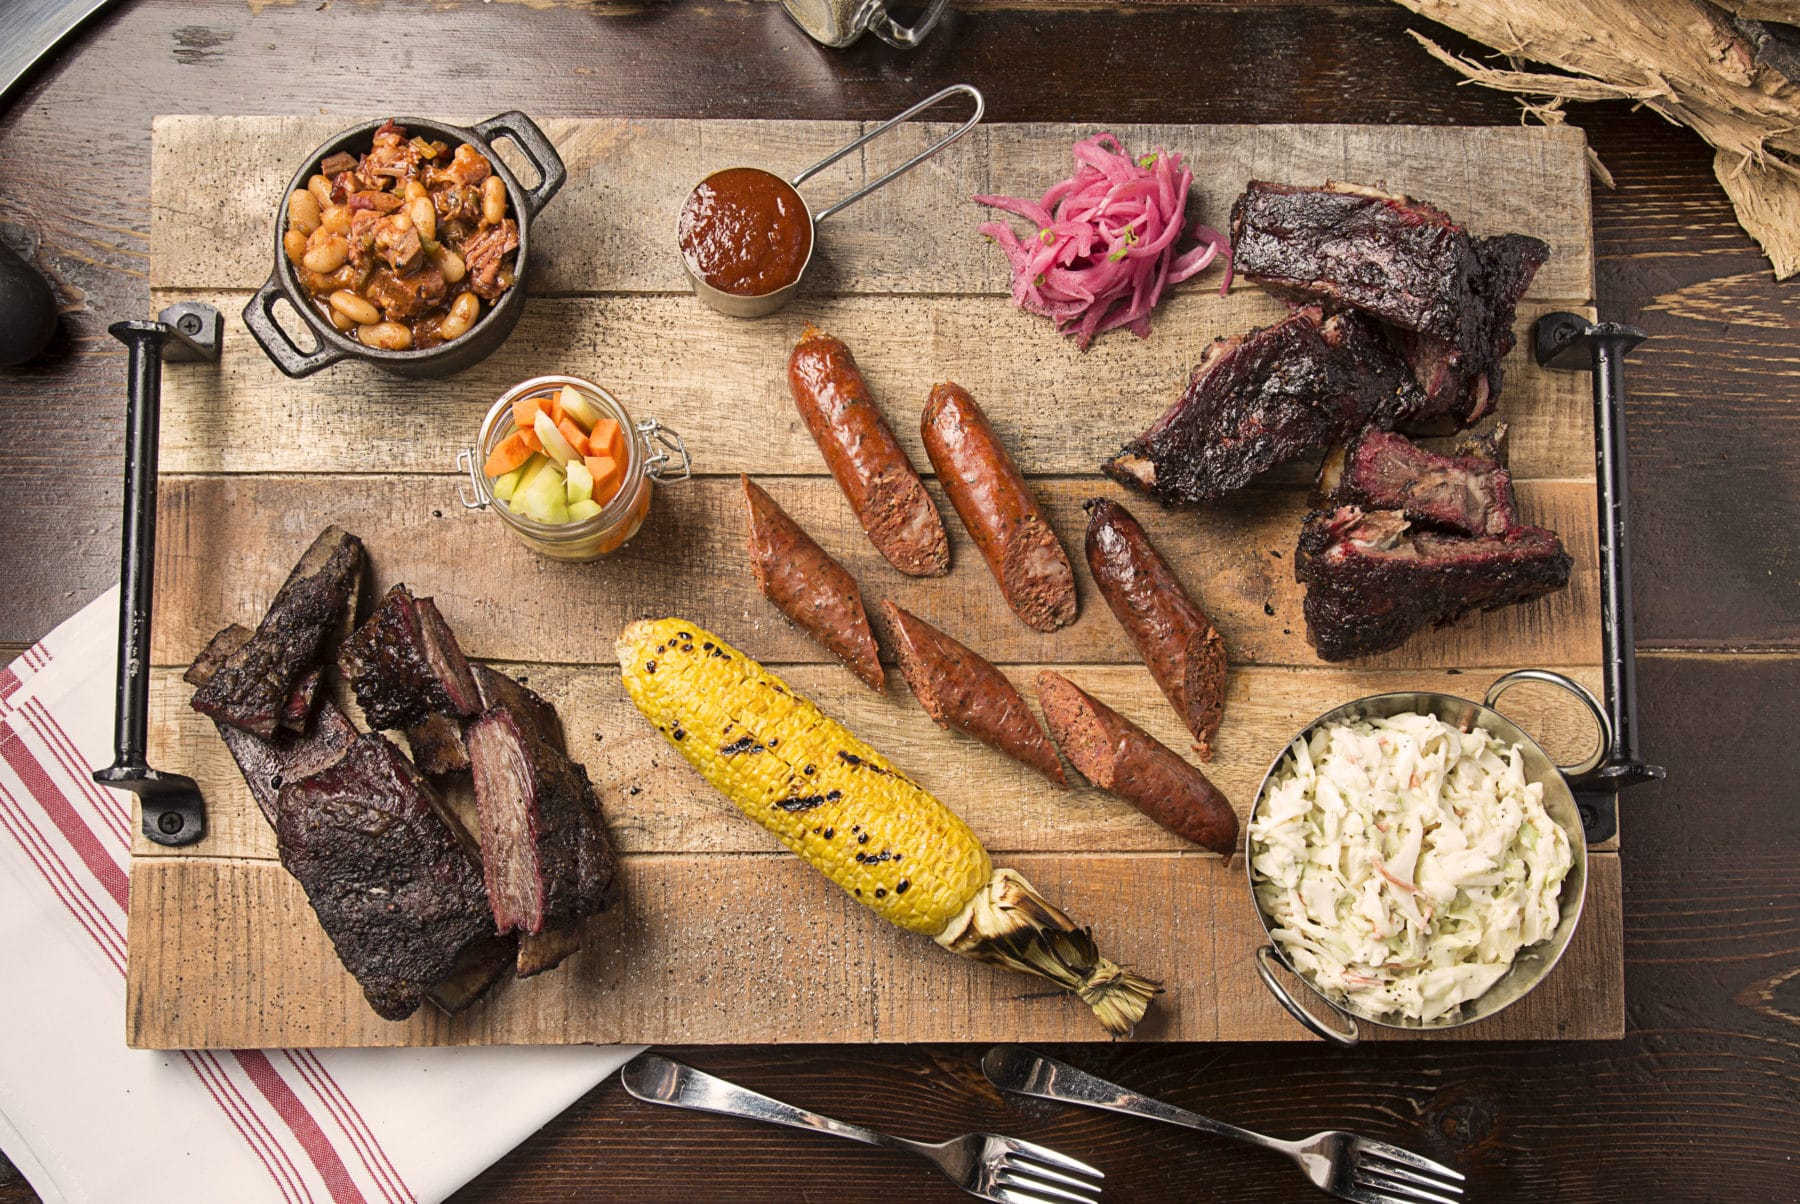 The Ideal Meat Kosher Restaurant in Miami